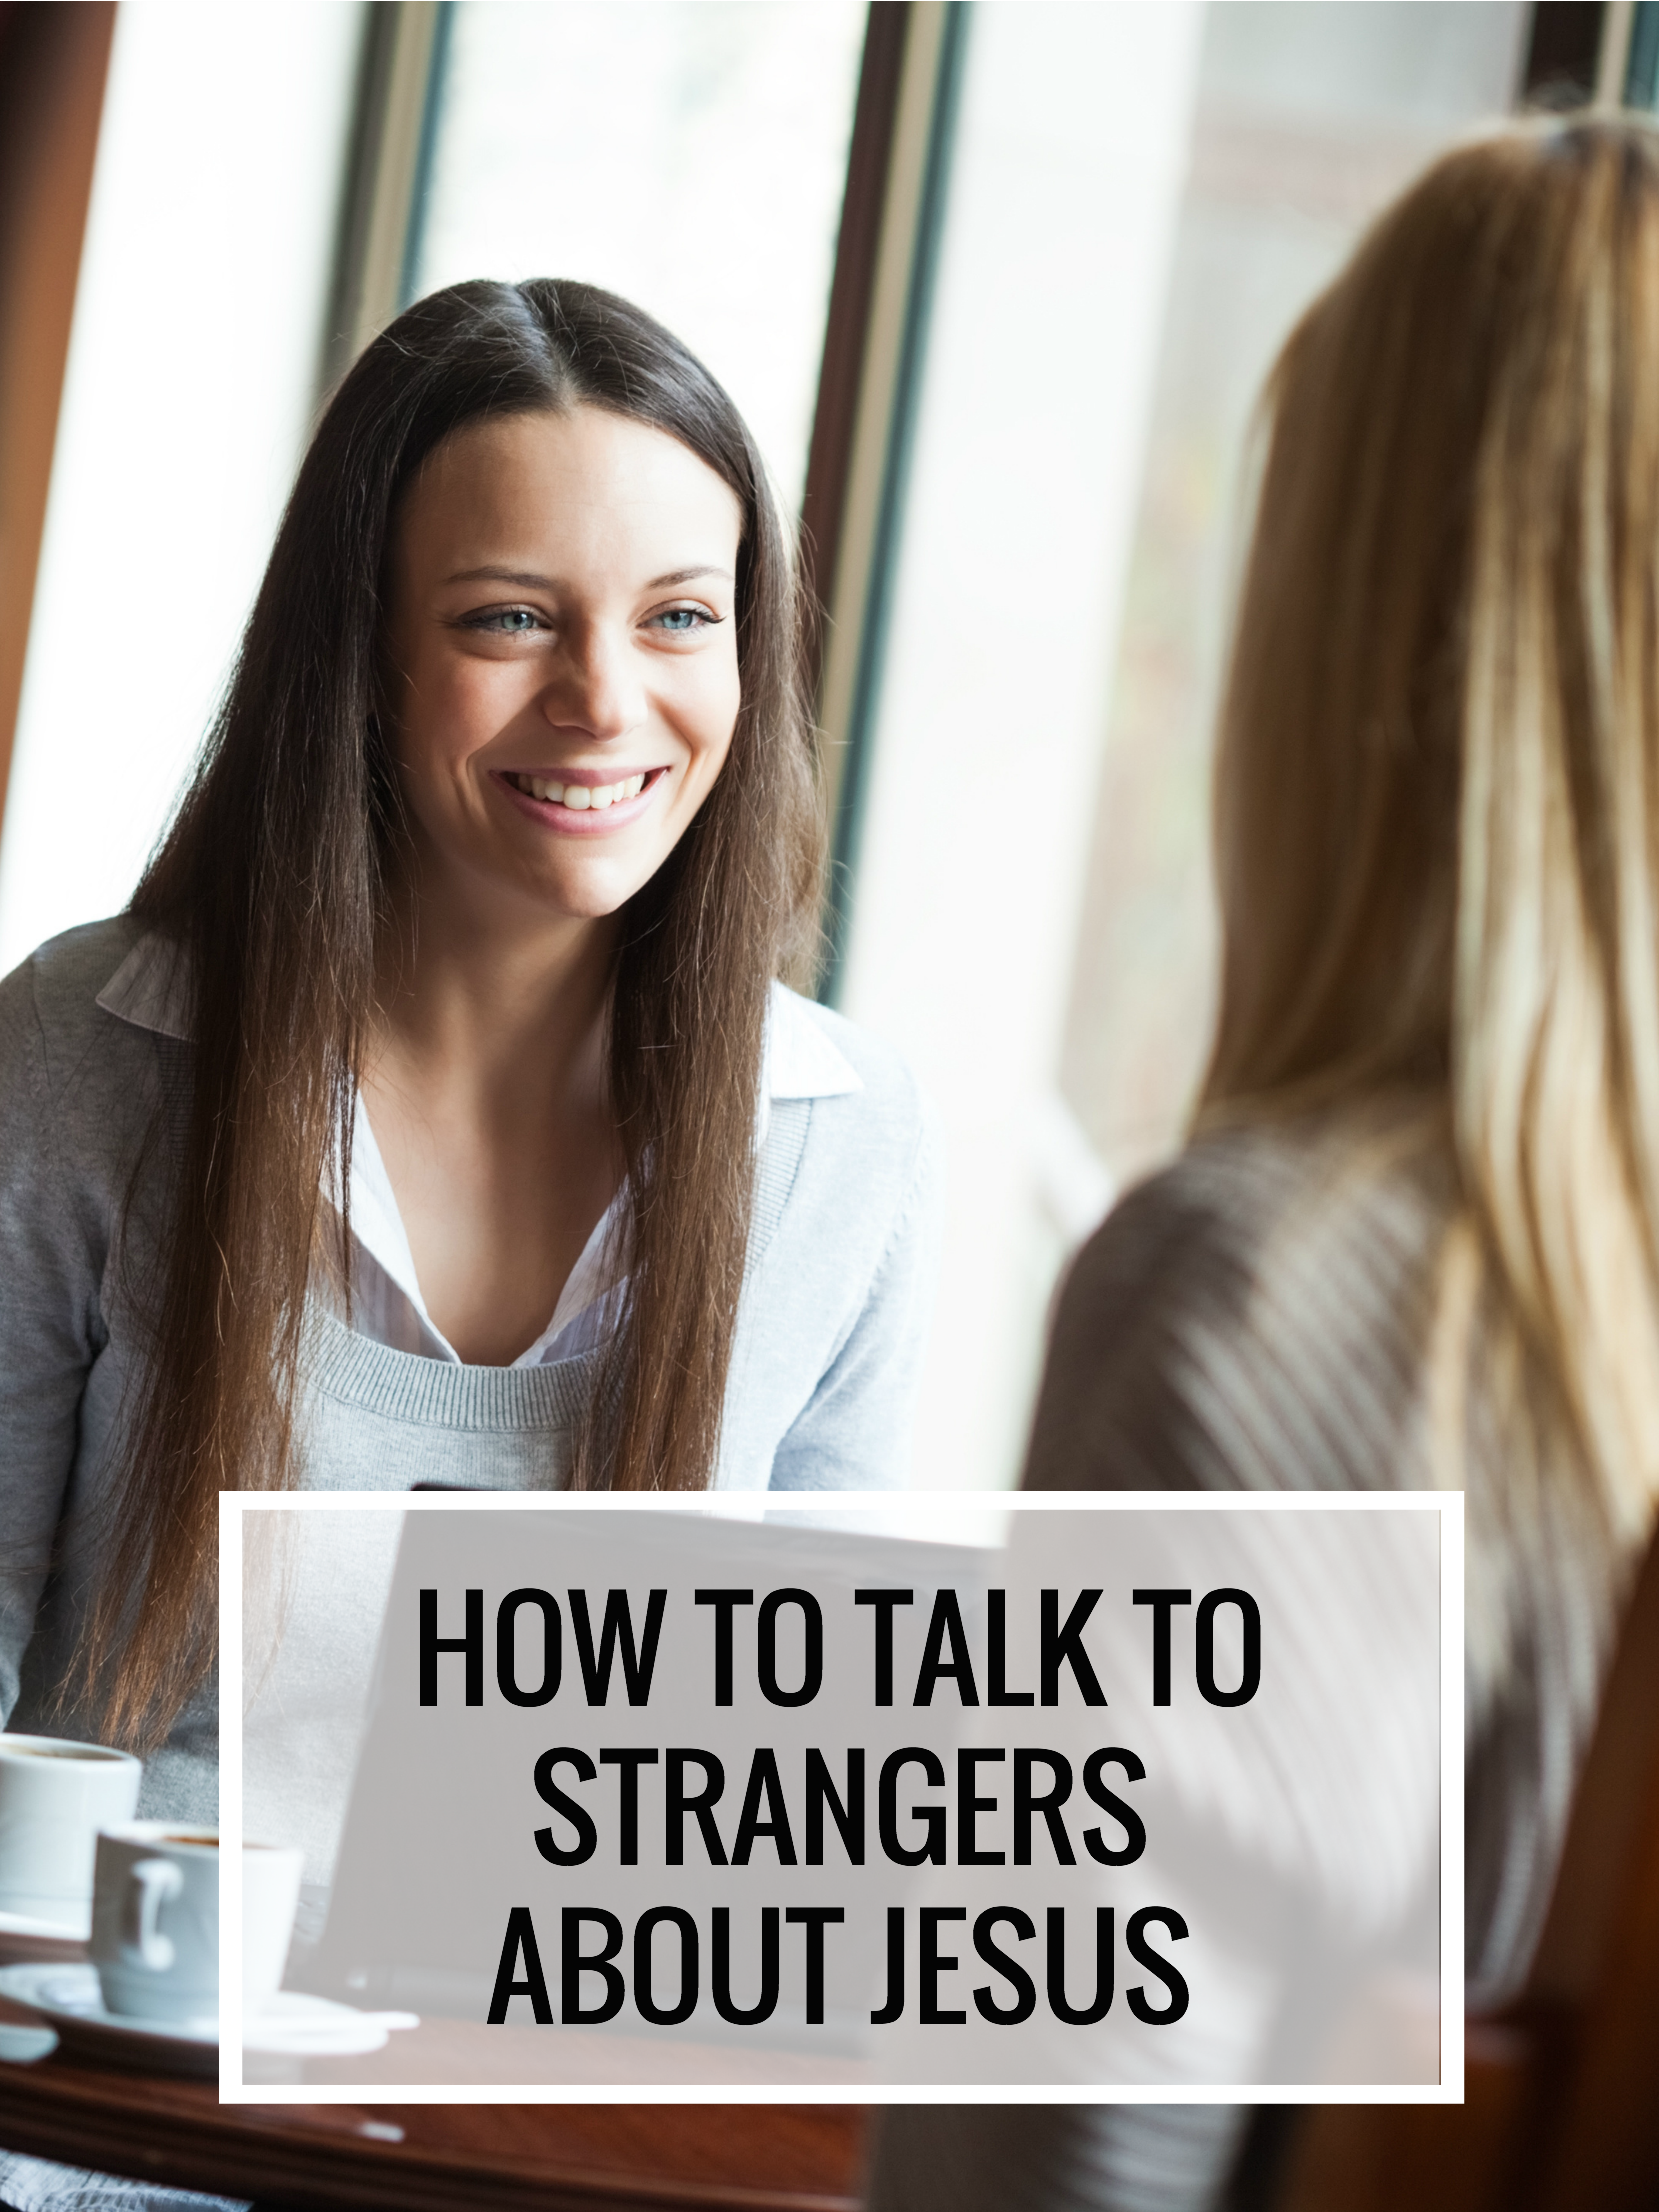 Tips of striking up a conversation